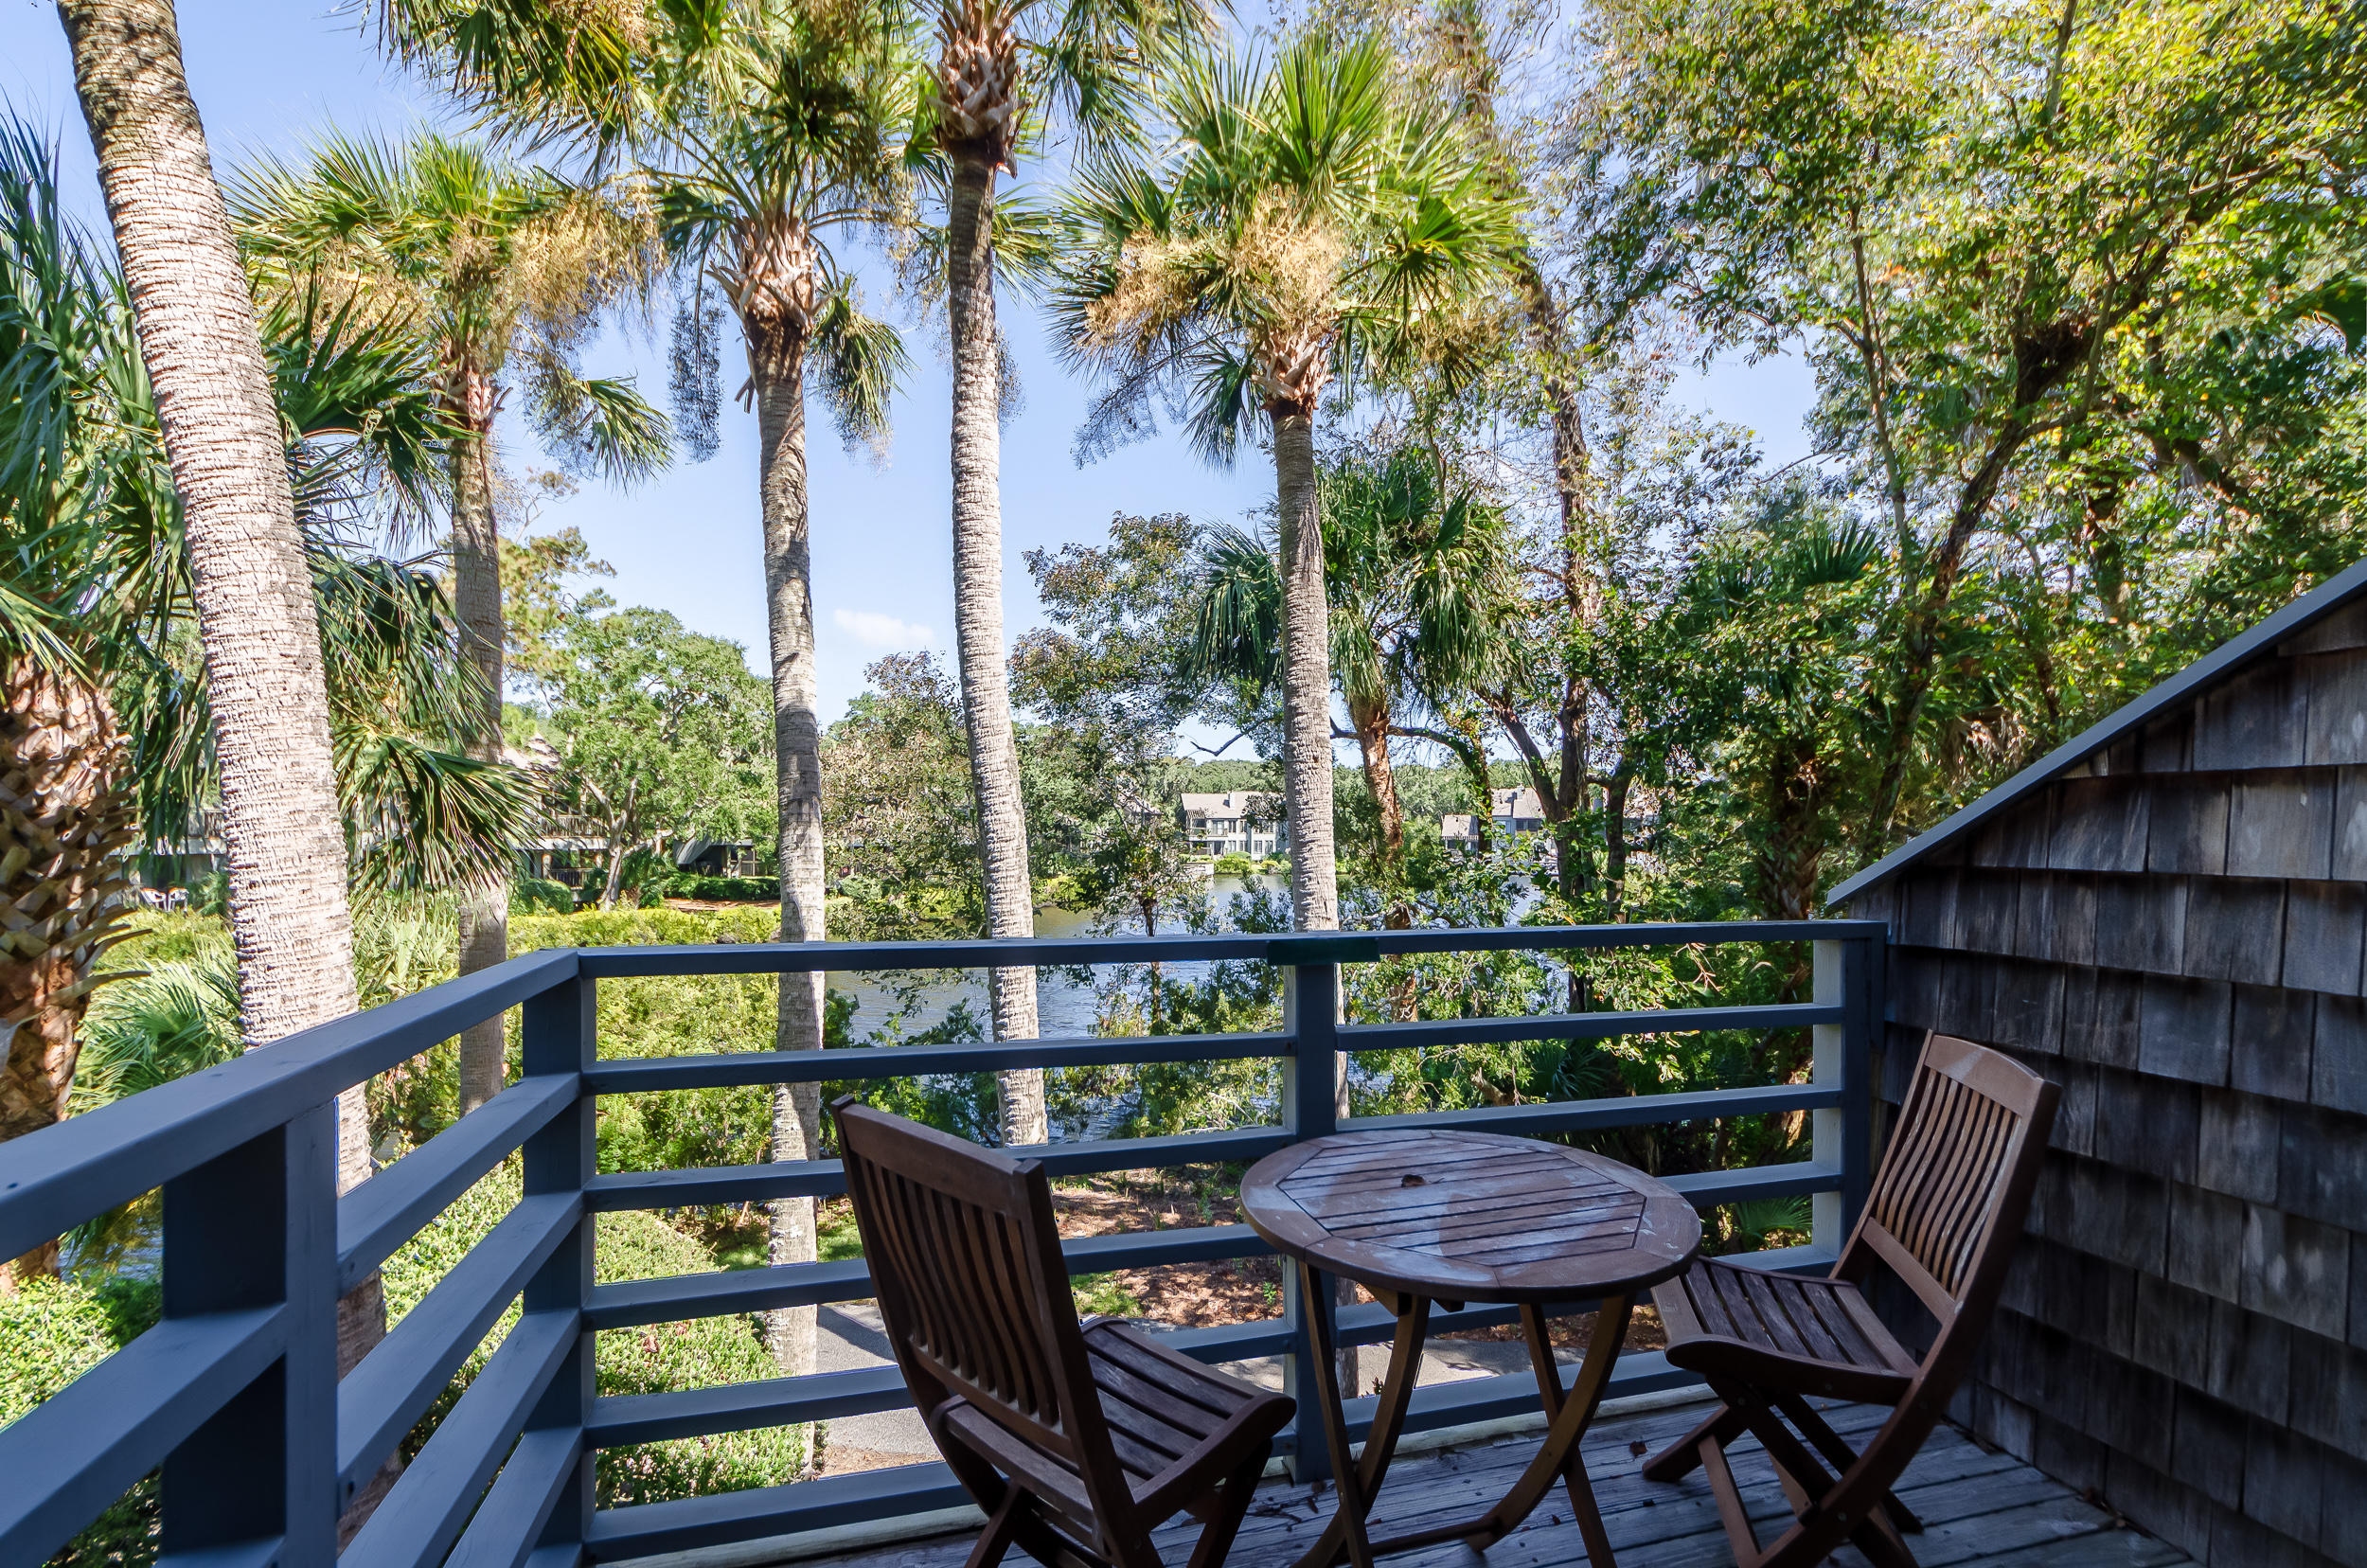 Windswept Villas Homes For Sale - 4373 Sea Forest, Kiawah Island, SC - 4